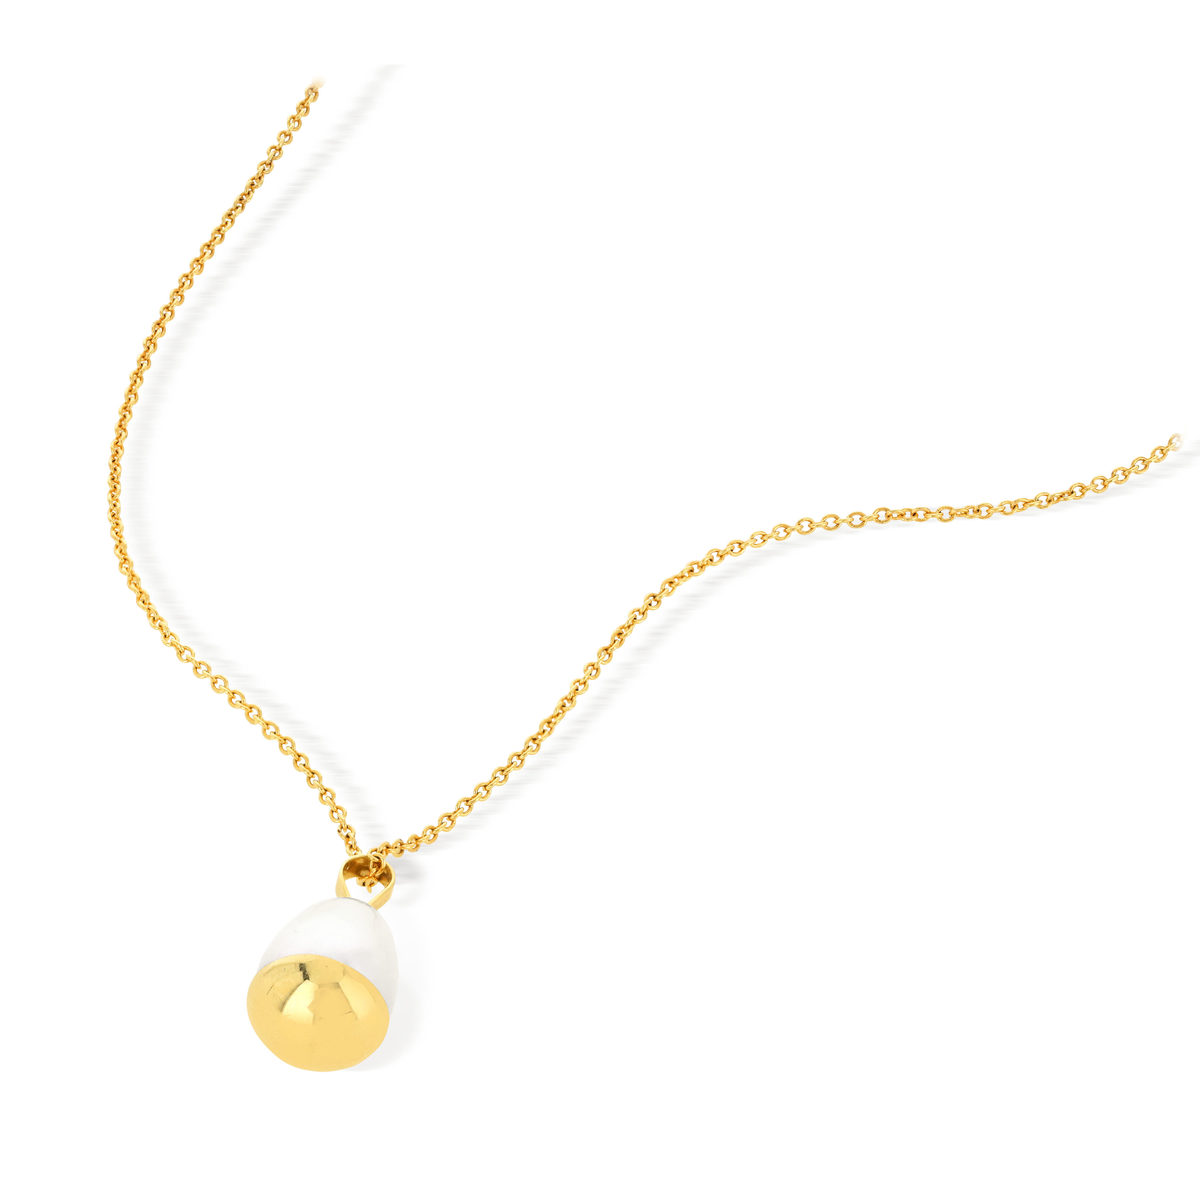 Collier MATY Or 375 jaune Perle de culture de chine - vue V4